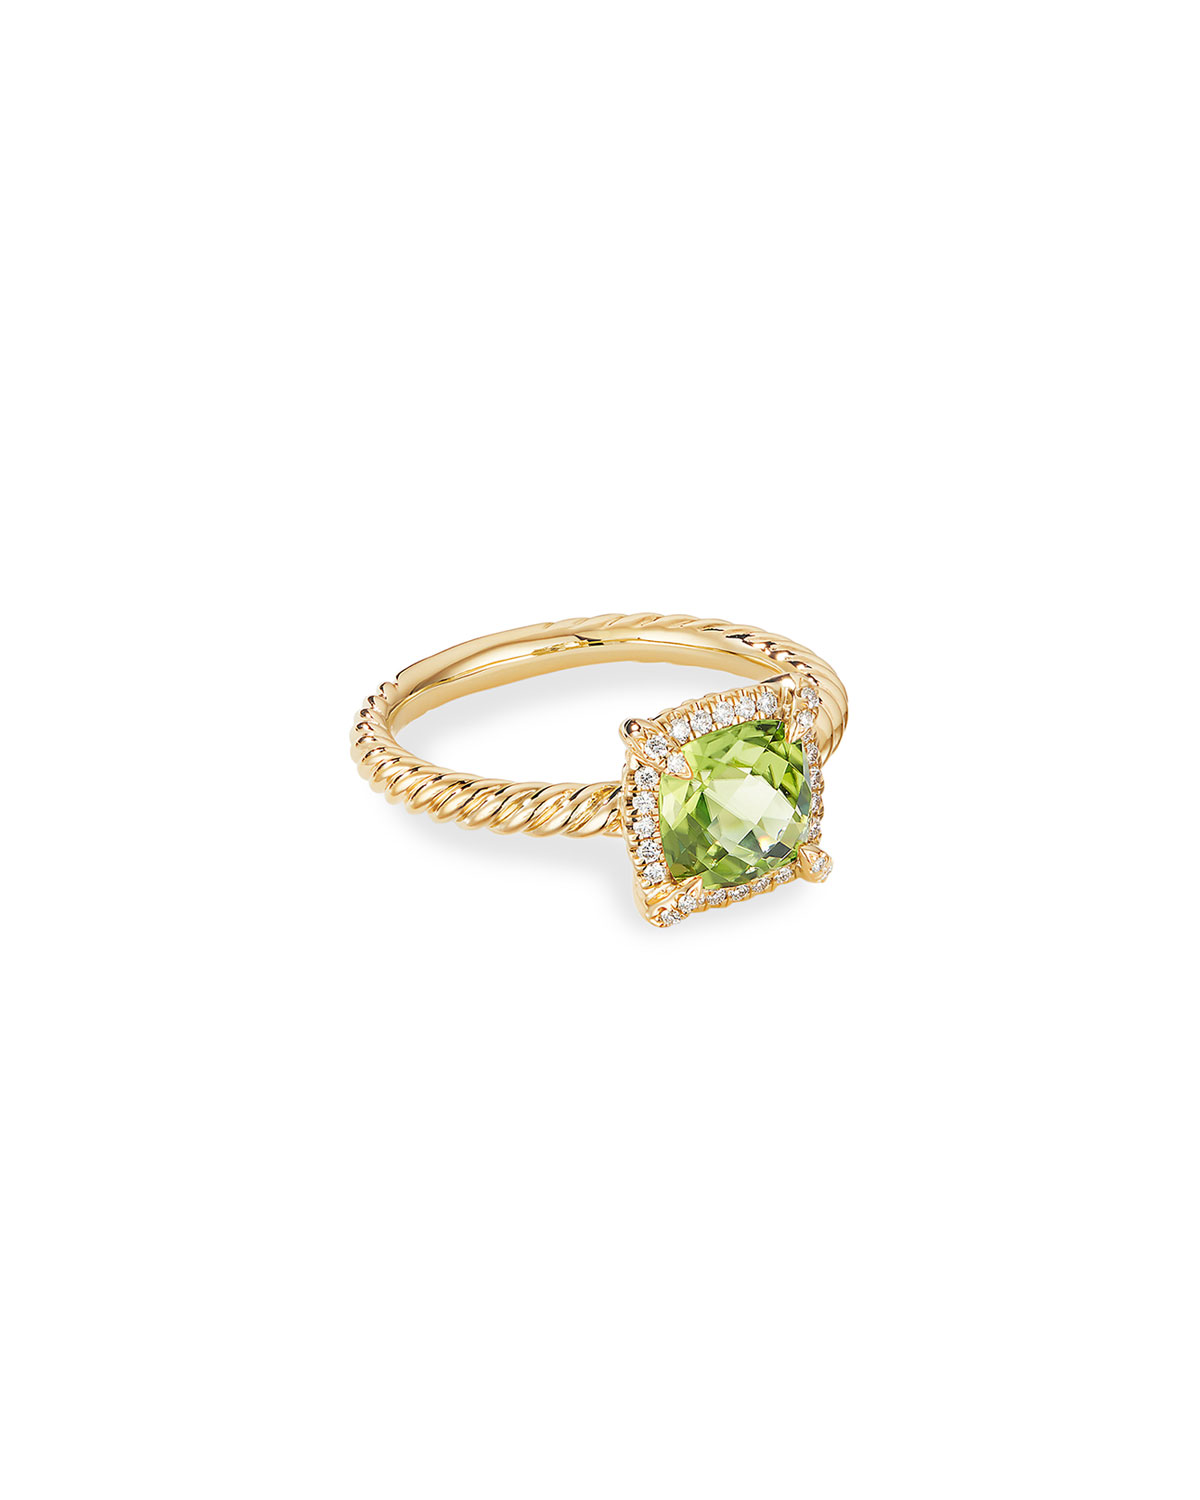 David Yurman Petite Chatelaine Pave Bezel Ring in 18K Gold with Peridot, Size 6